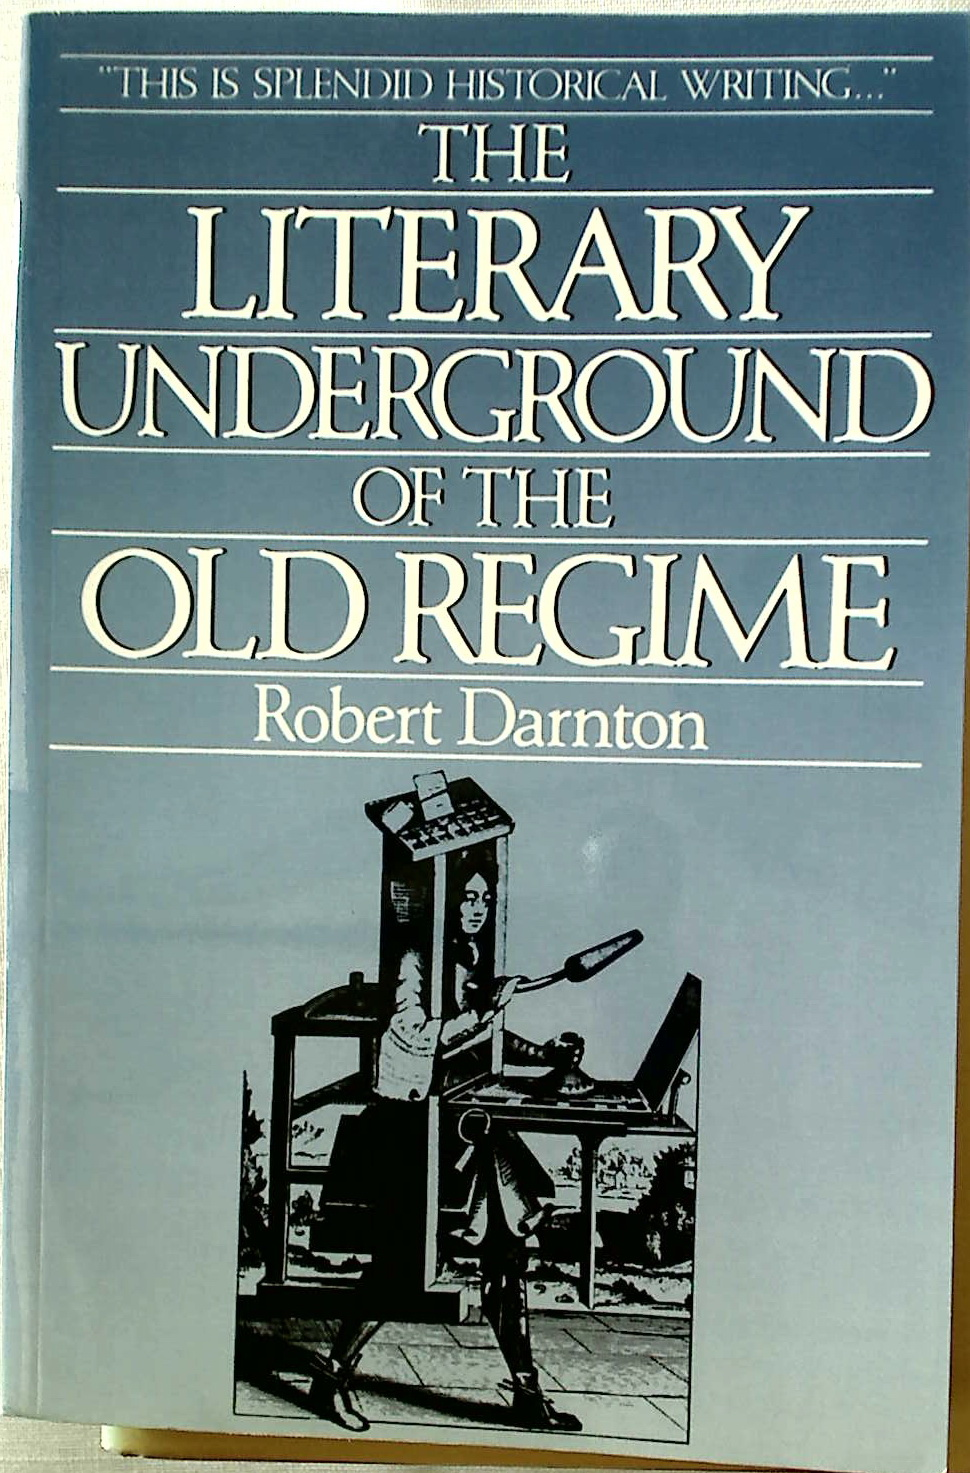 The Literary Underground of the Old Regime.